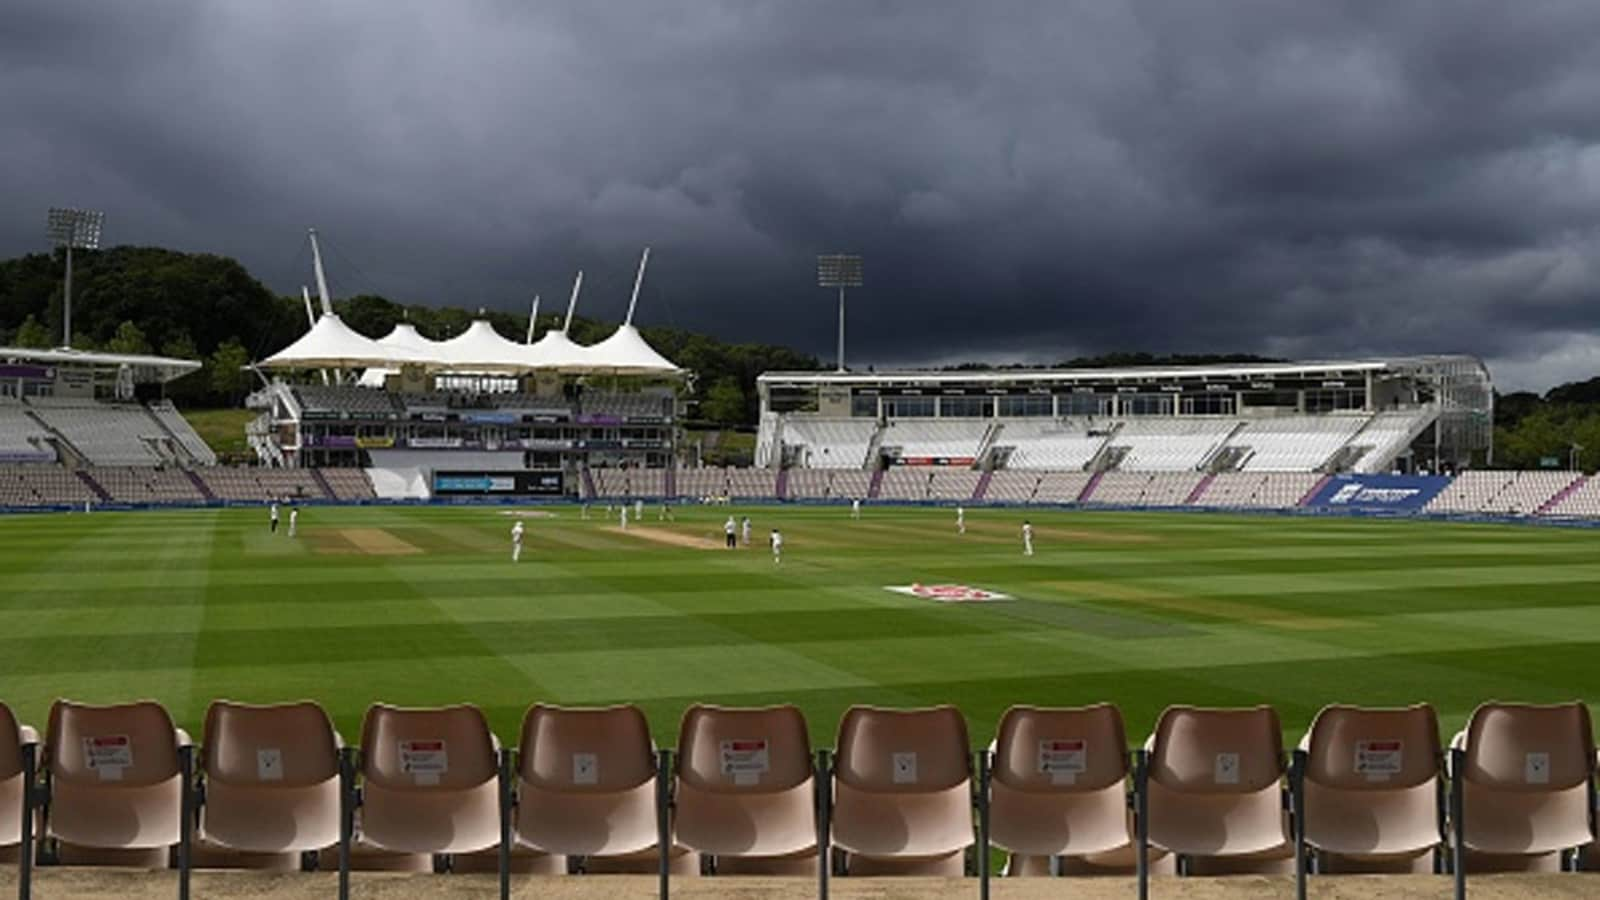 India vs New Zealand, WTC Final, Southampton weather today: Overcast skies, rain promise to threaten play at Rose Bowl | Cricket - Hindustan Times